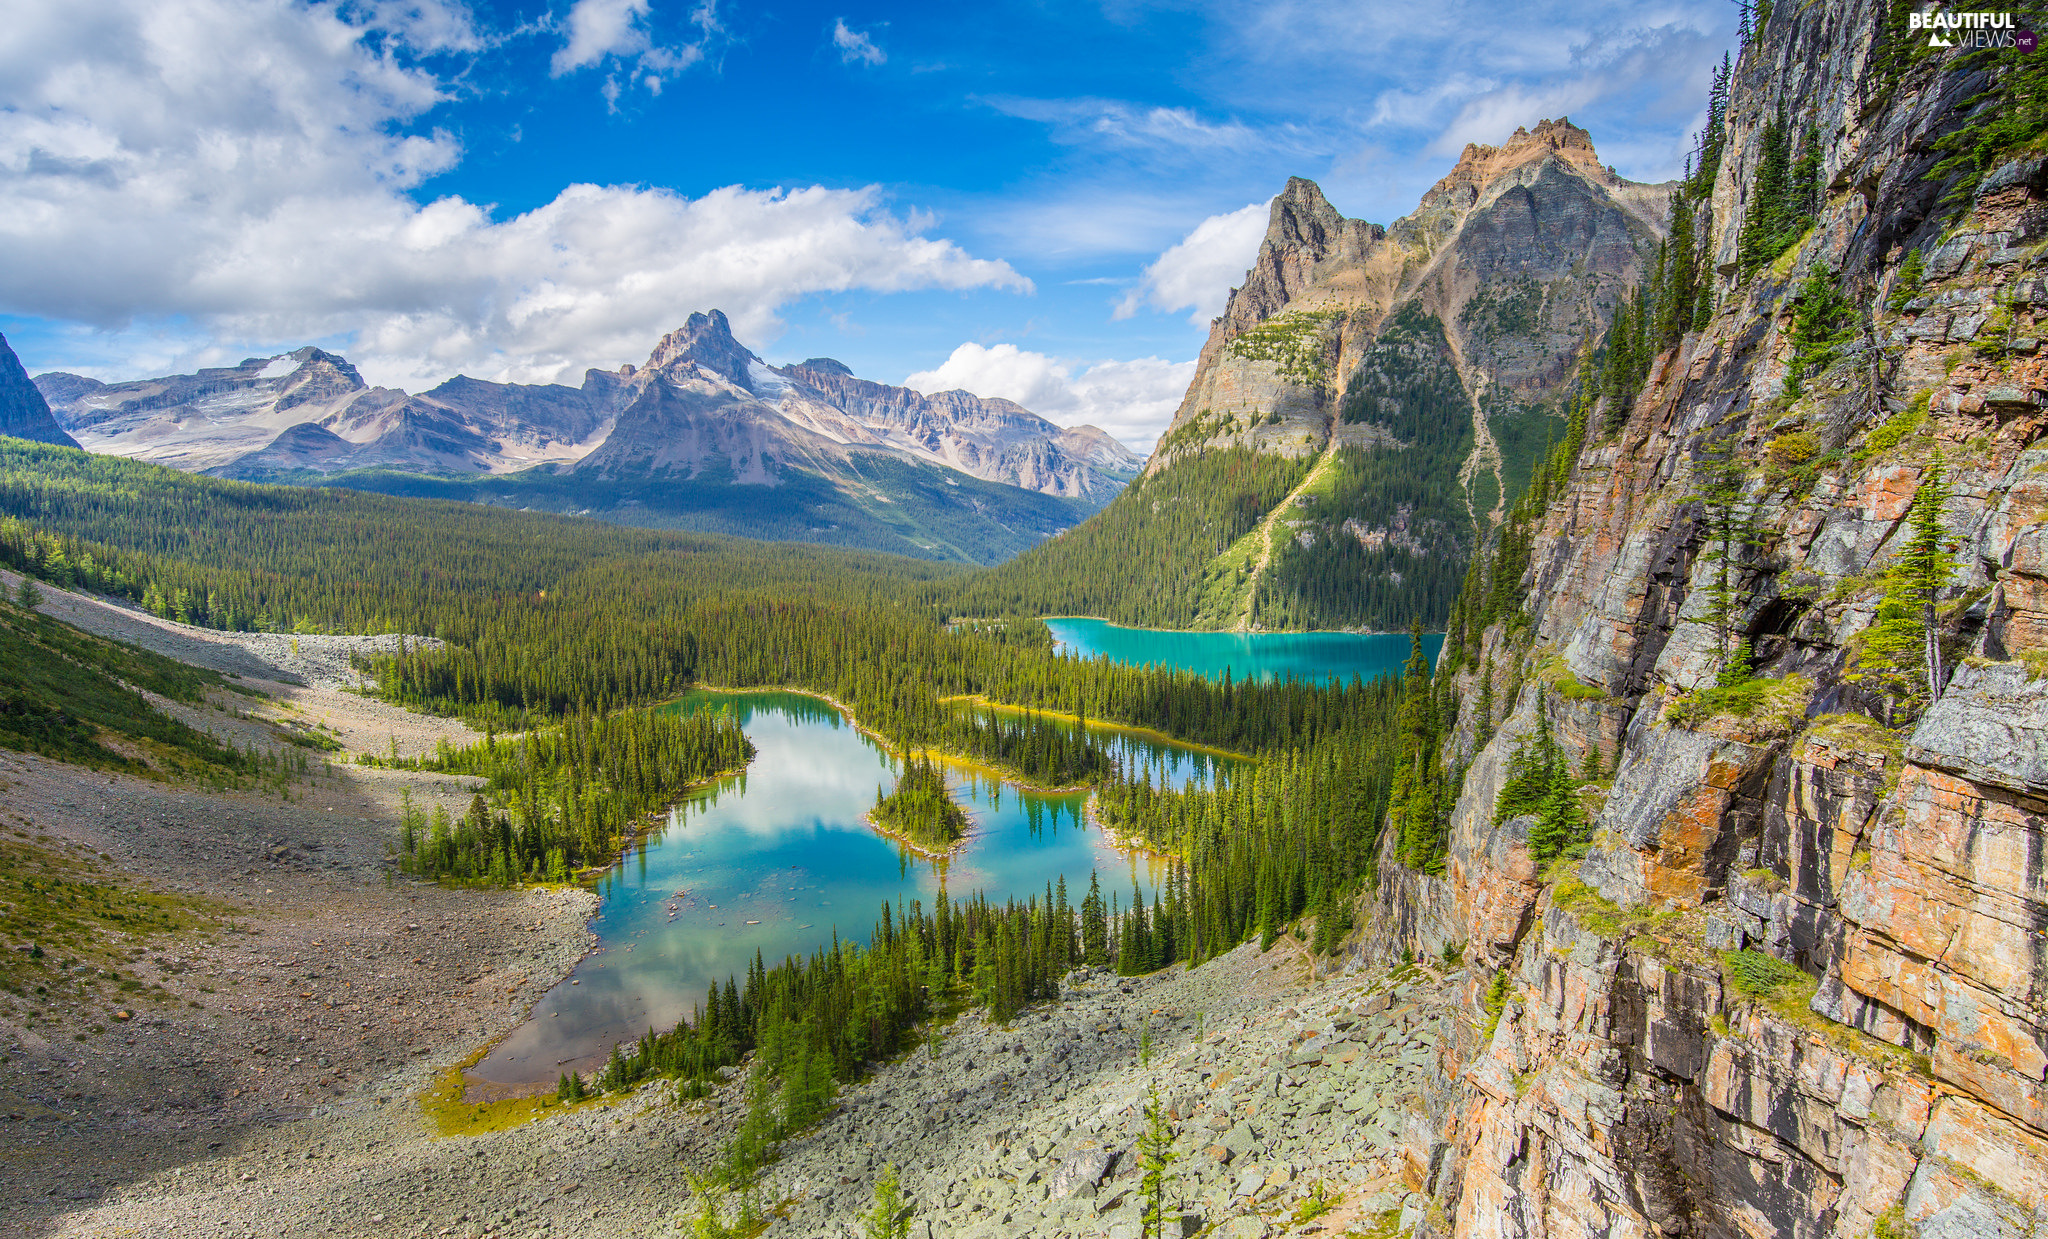 Lake O Hara, Province of British Columbia, forest, Yoho National Park, Canada, Mountains, clouds